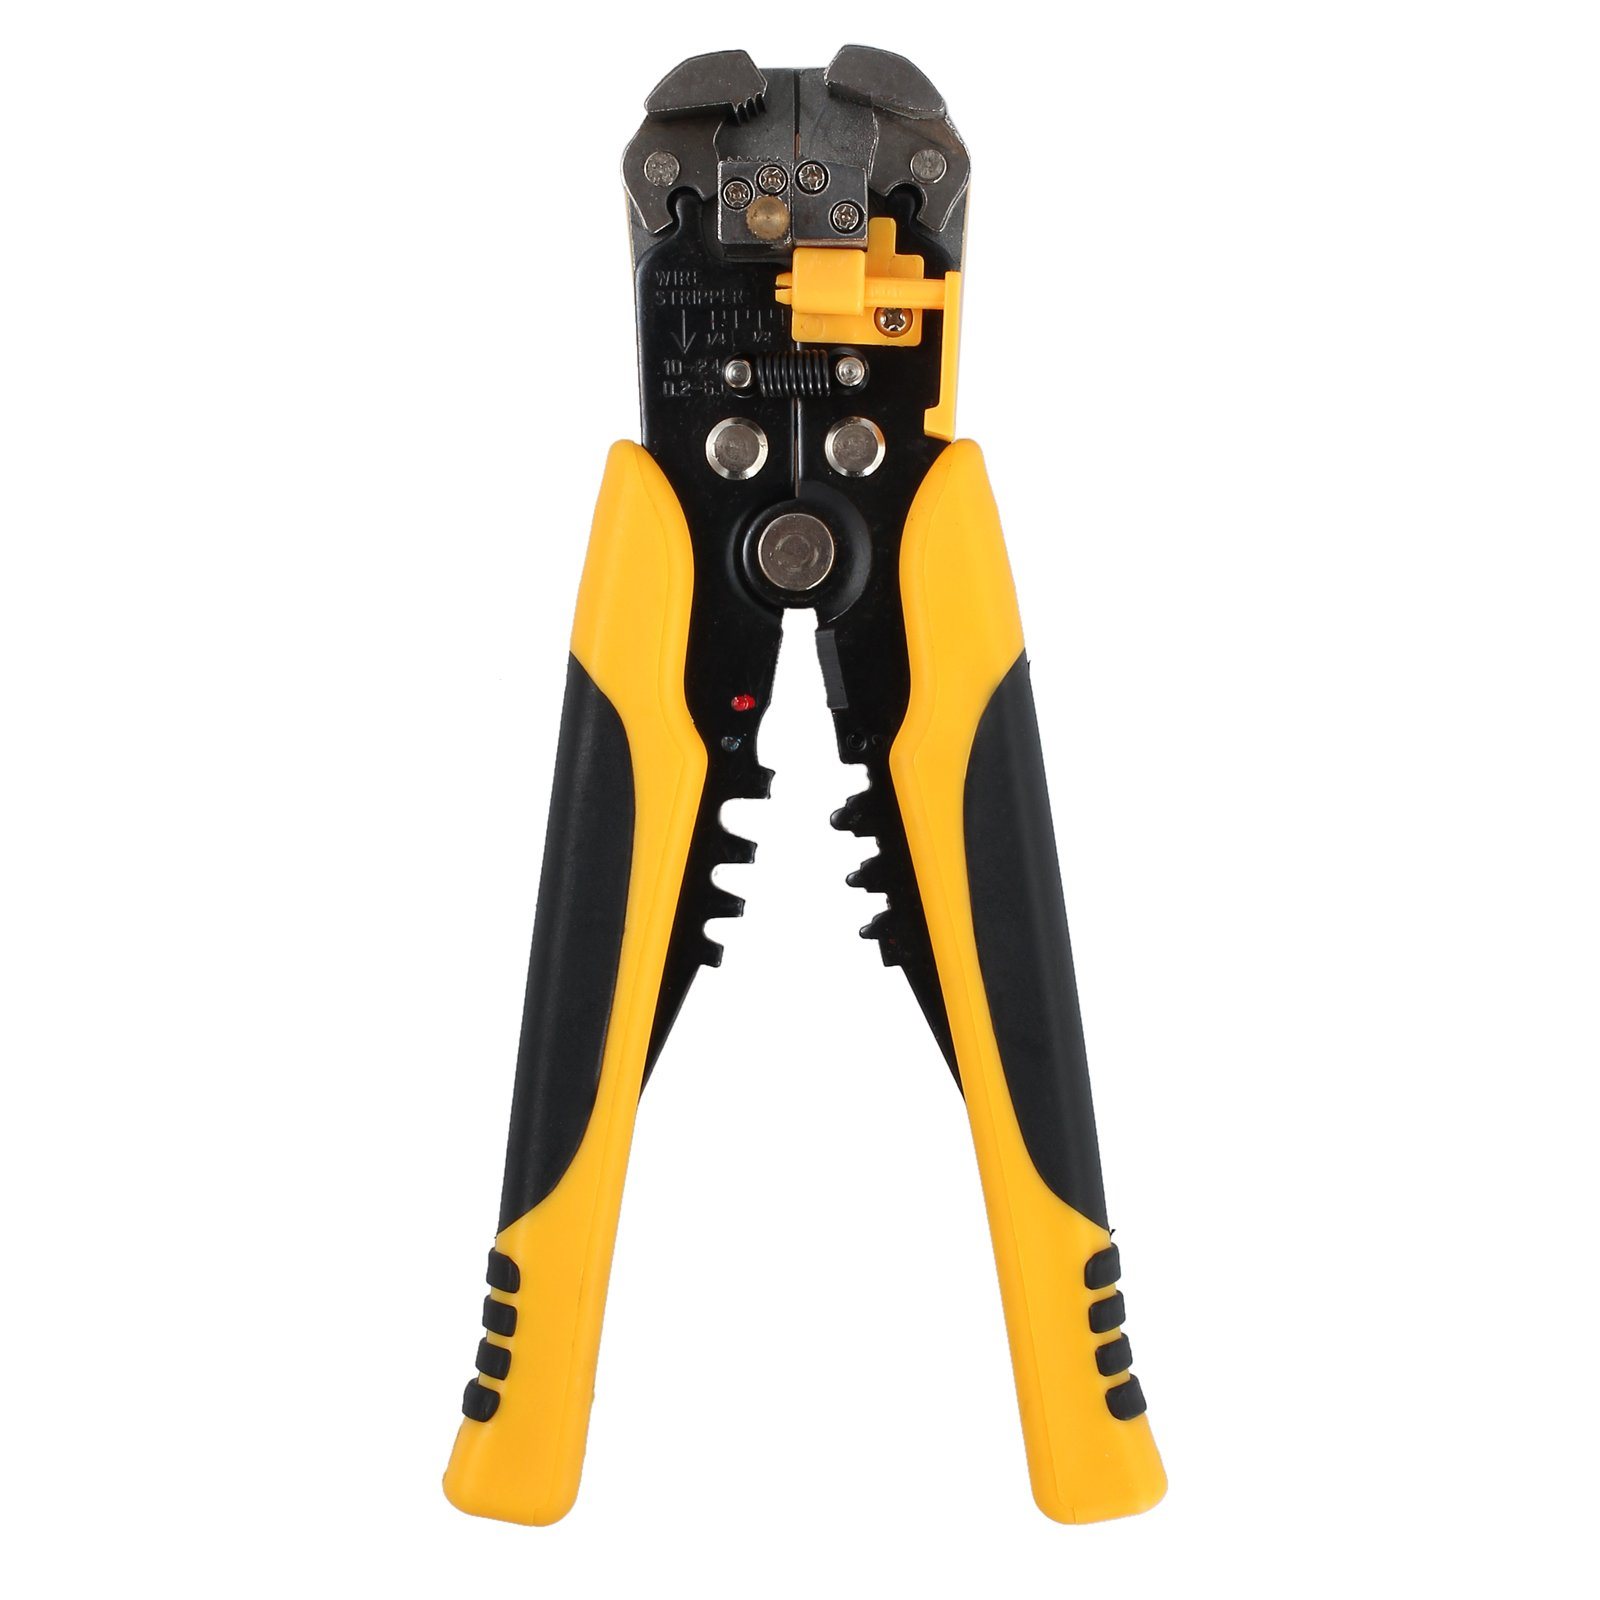 Proxima Direct Cable Crimper Wire Stripping Plier Tool Set Automatic Wire Stripper Crimper Cutter Cable Stripping Cutting Crimping Multifunctional Pliers 0.2-6 mm ²